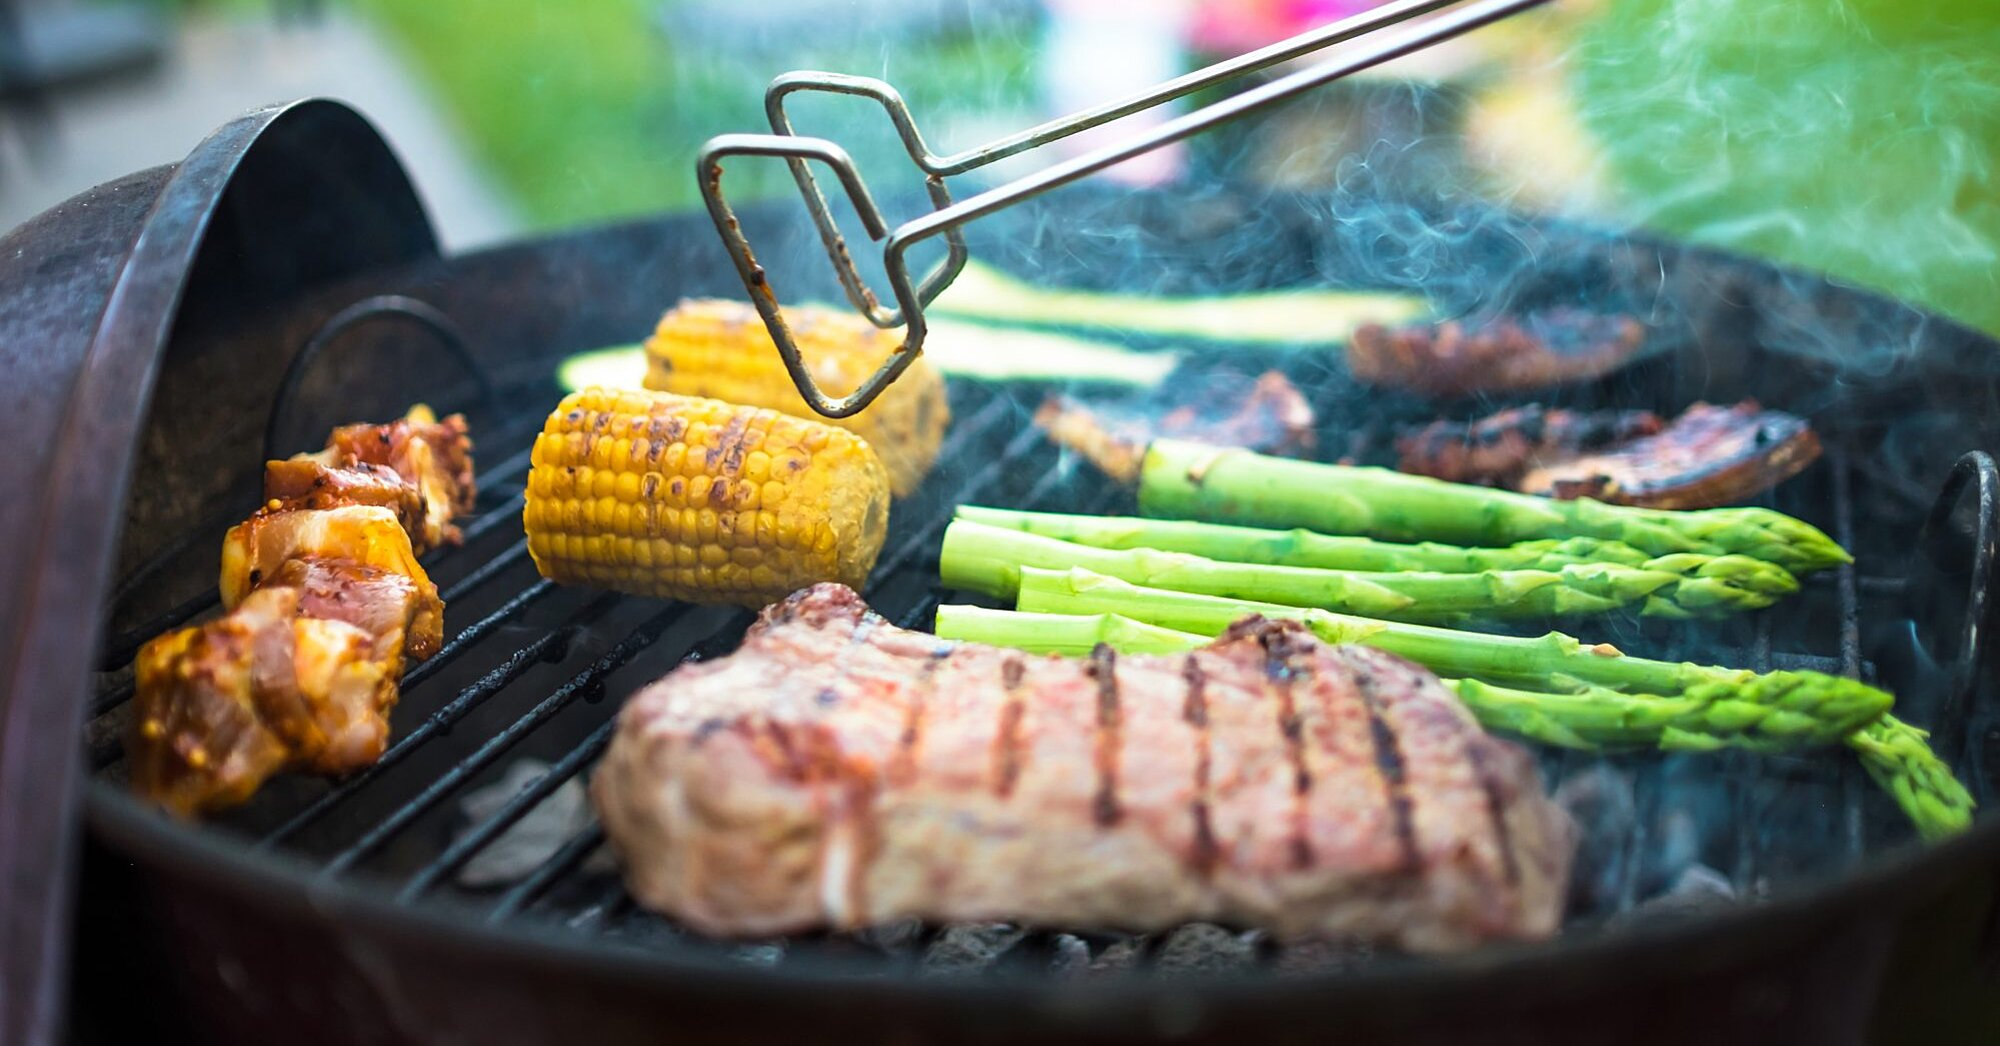 Grill Season Isn't Over—Here's the Ultimate Guide to Grilling Safely and Comfortably in Cold Weather